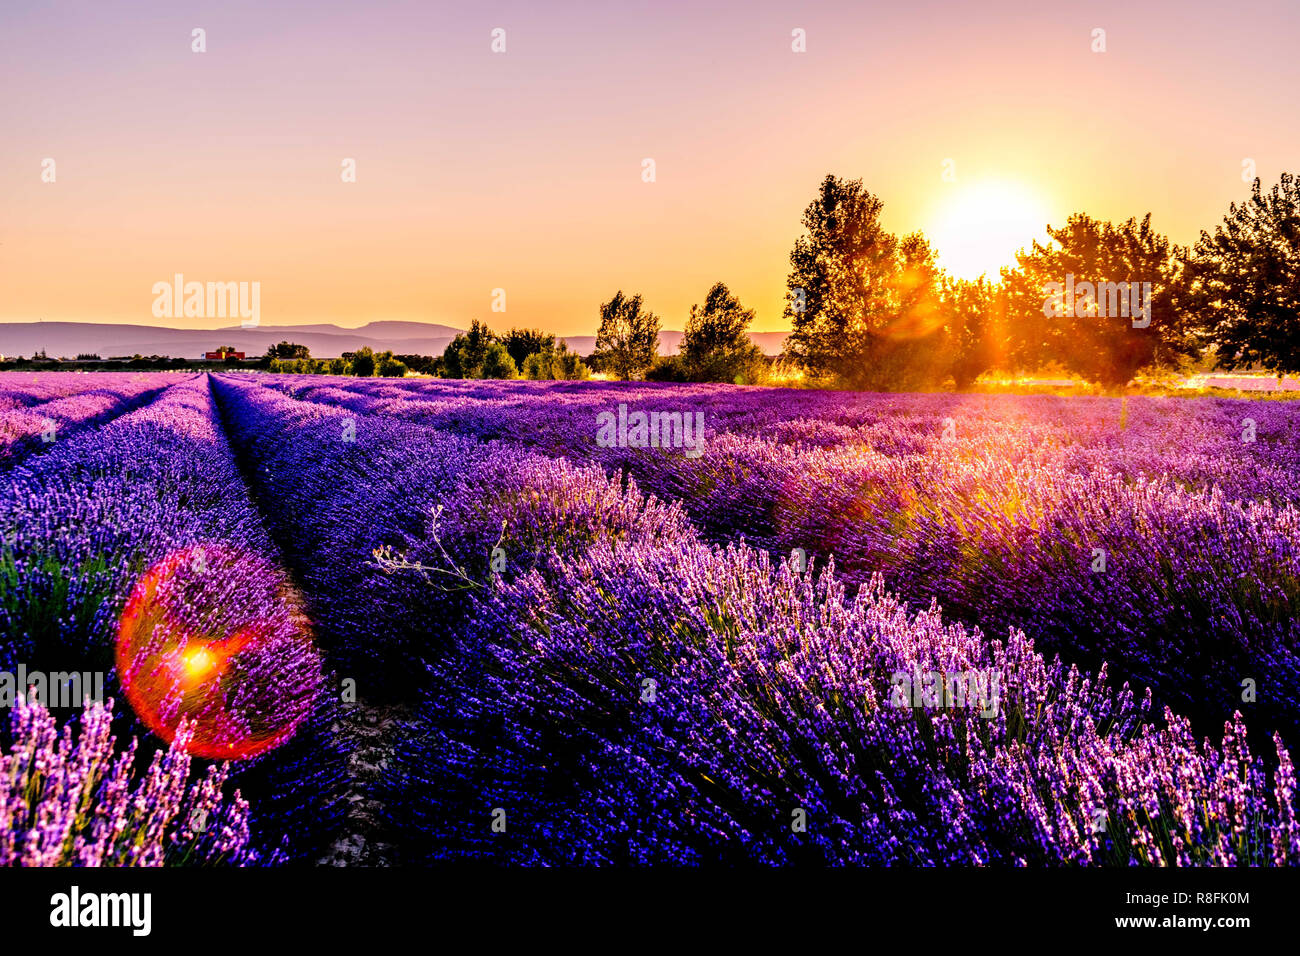 Lavender Field Purple Flowers At Sunset Landscape Stock Photo Alamy